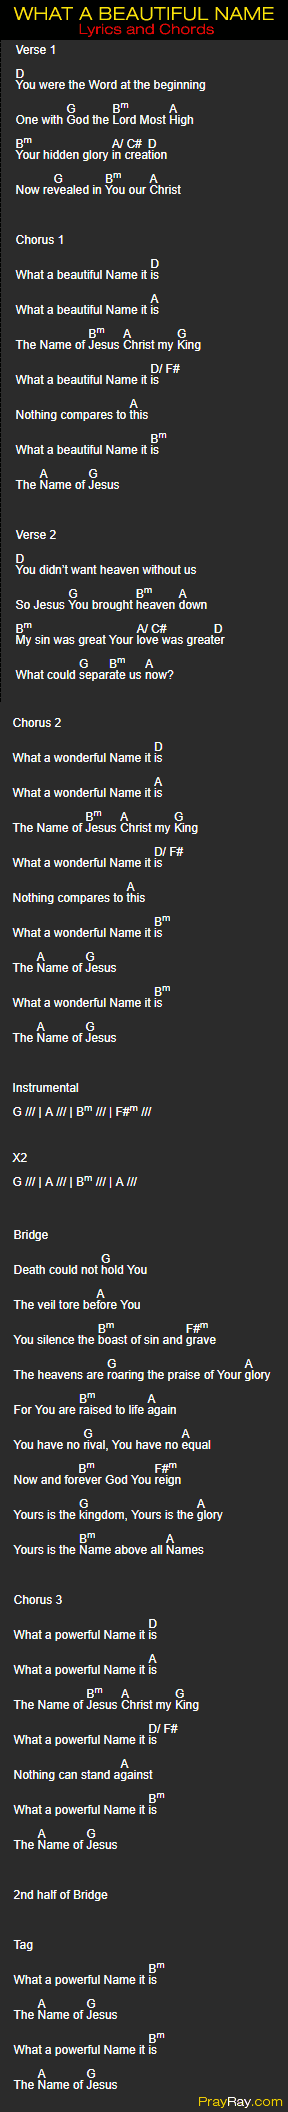 HILLSONG WORSHIP SONG - WHAT A BEAUTIFUL NAME. Chords, Lyrics